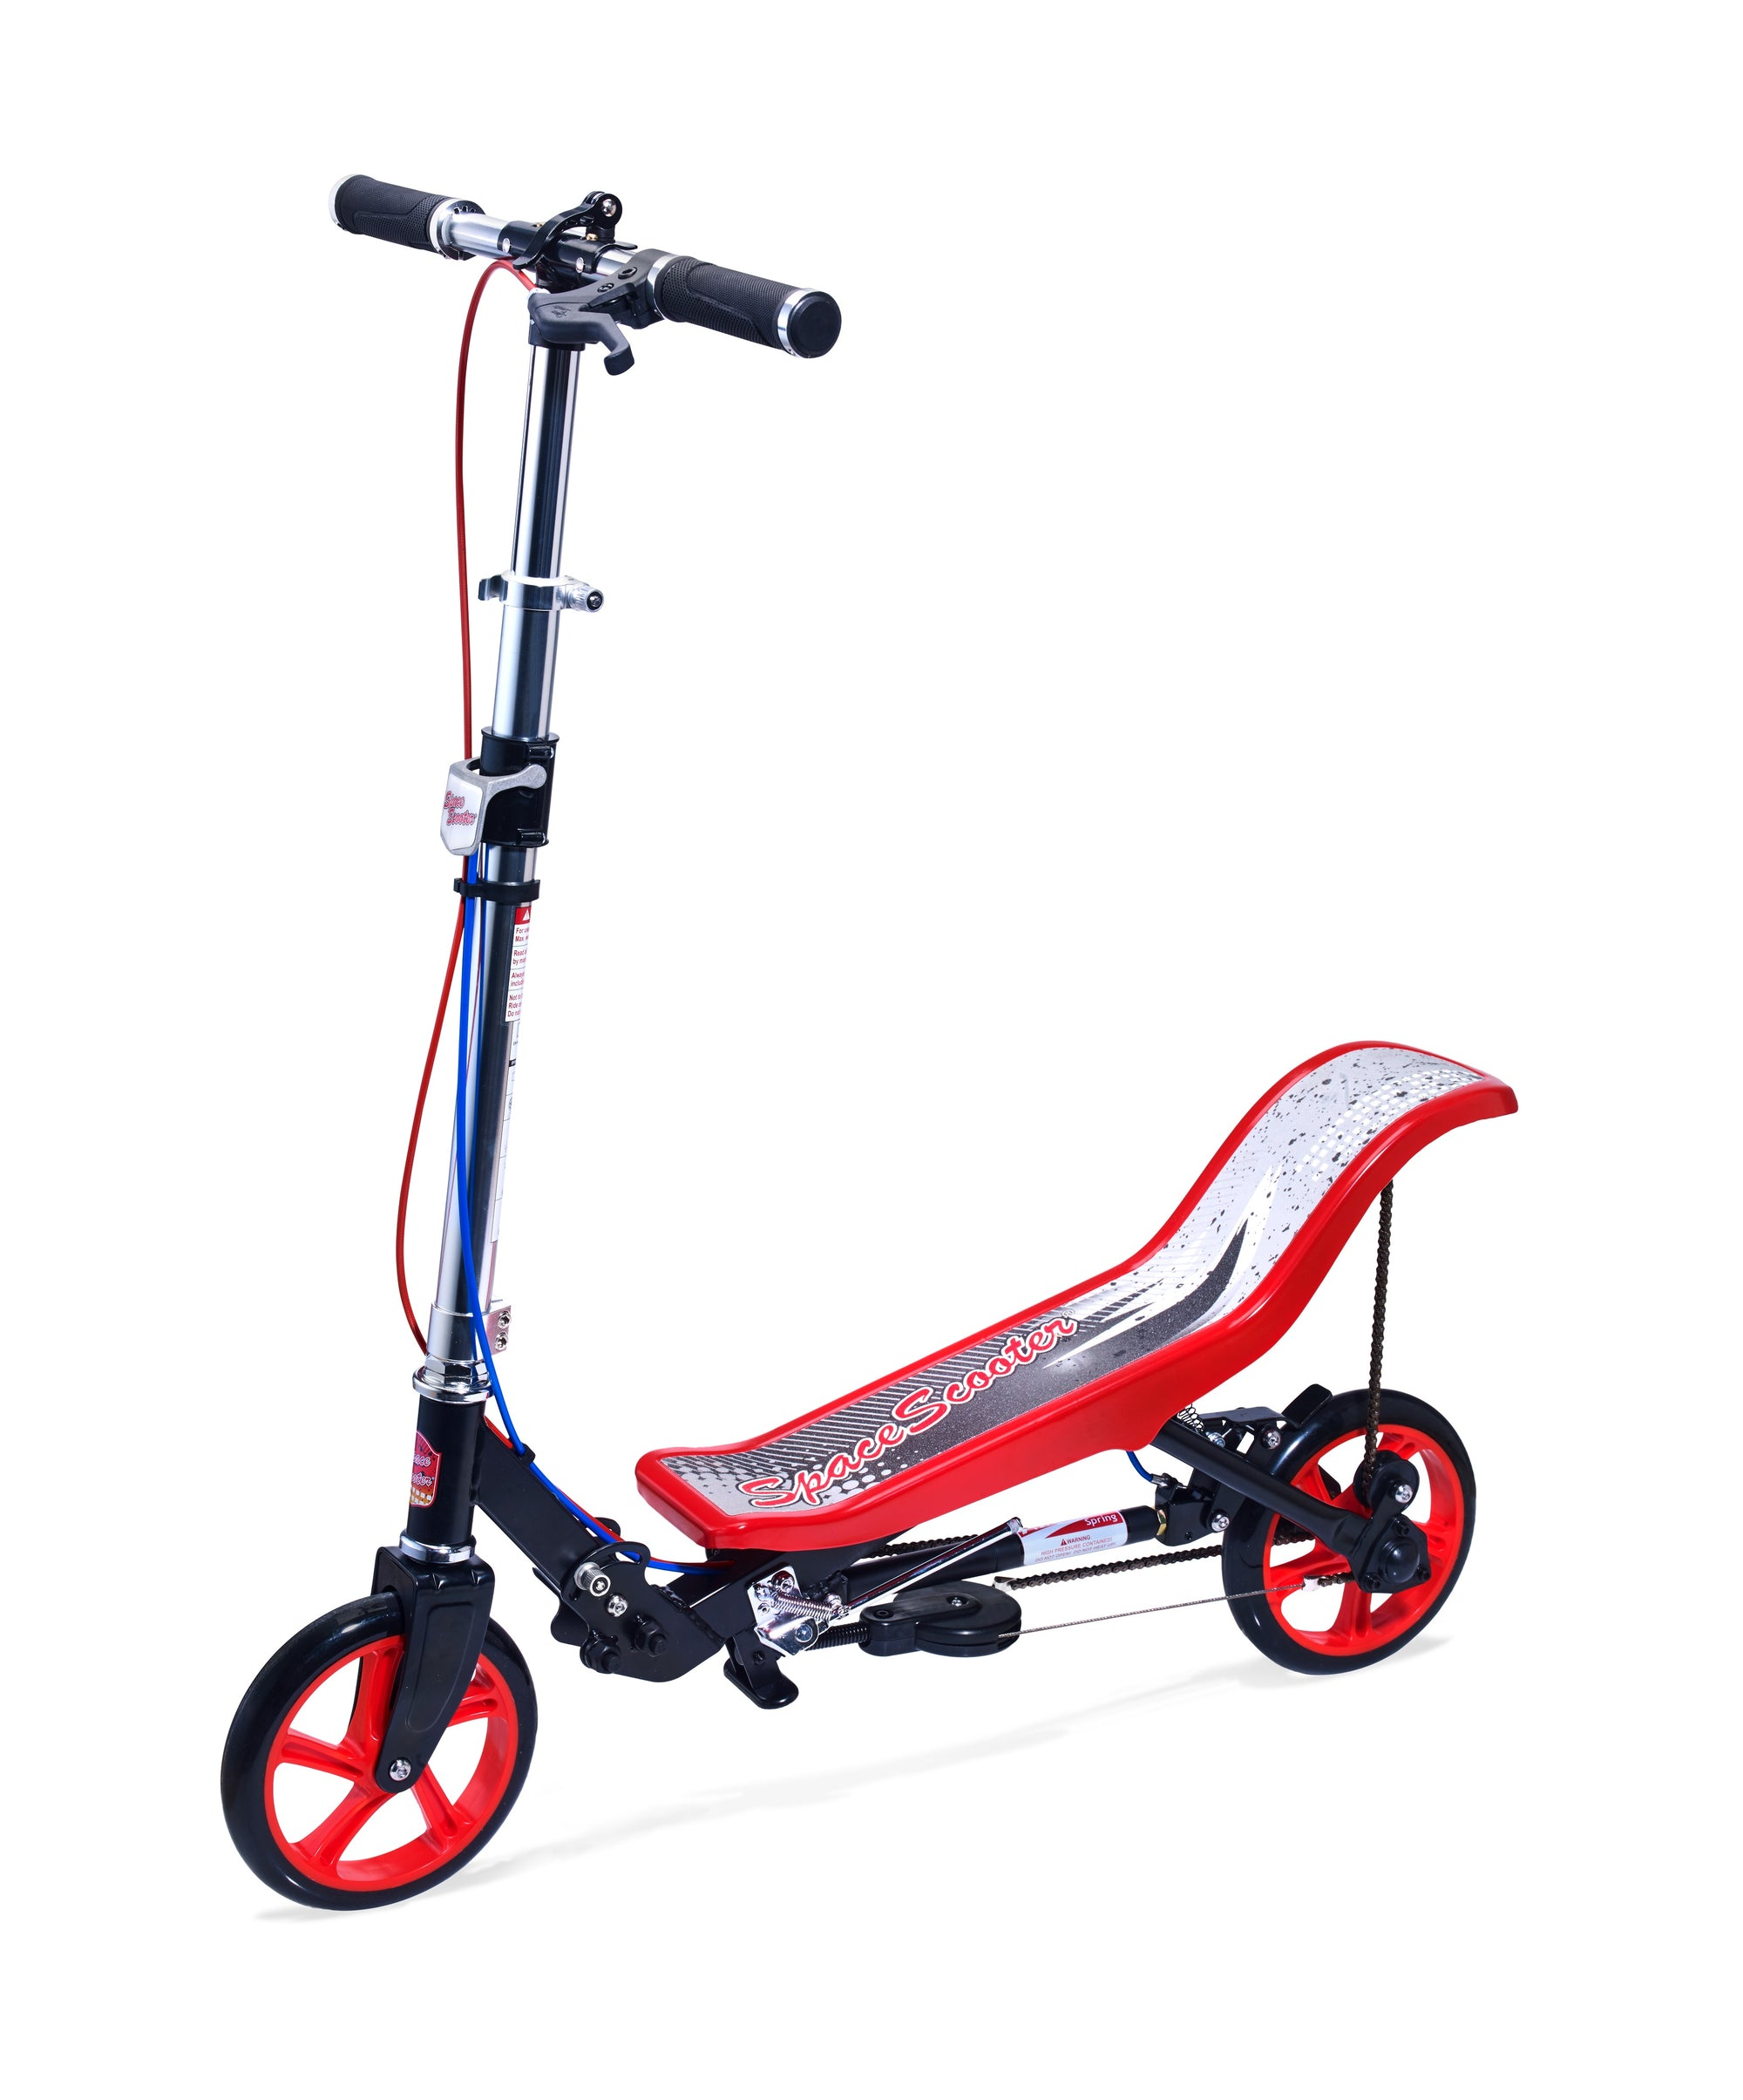 Space Scooter X590 - Zwart/Rood (ESS3BaRe)